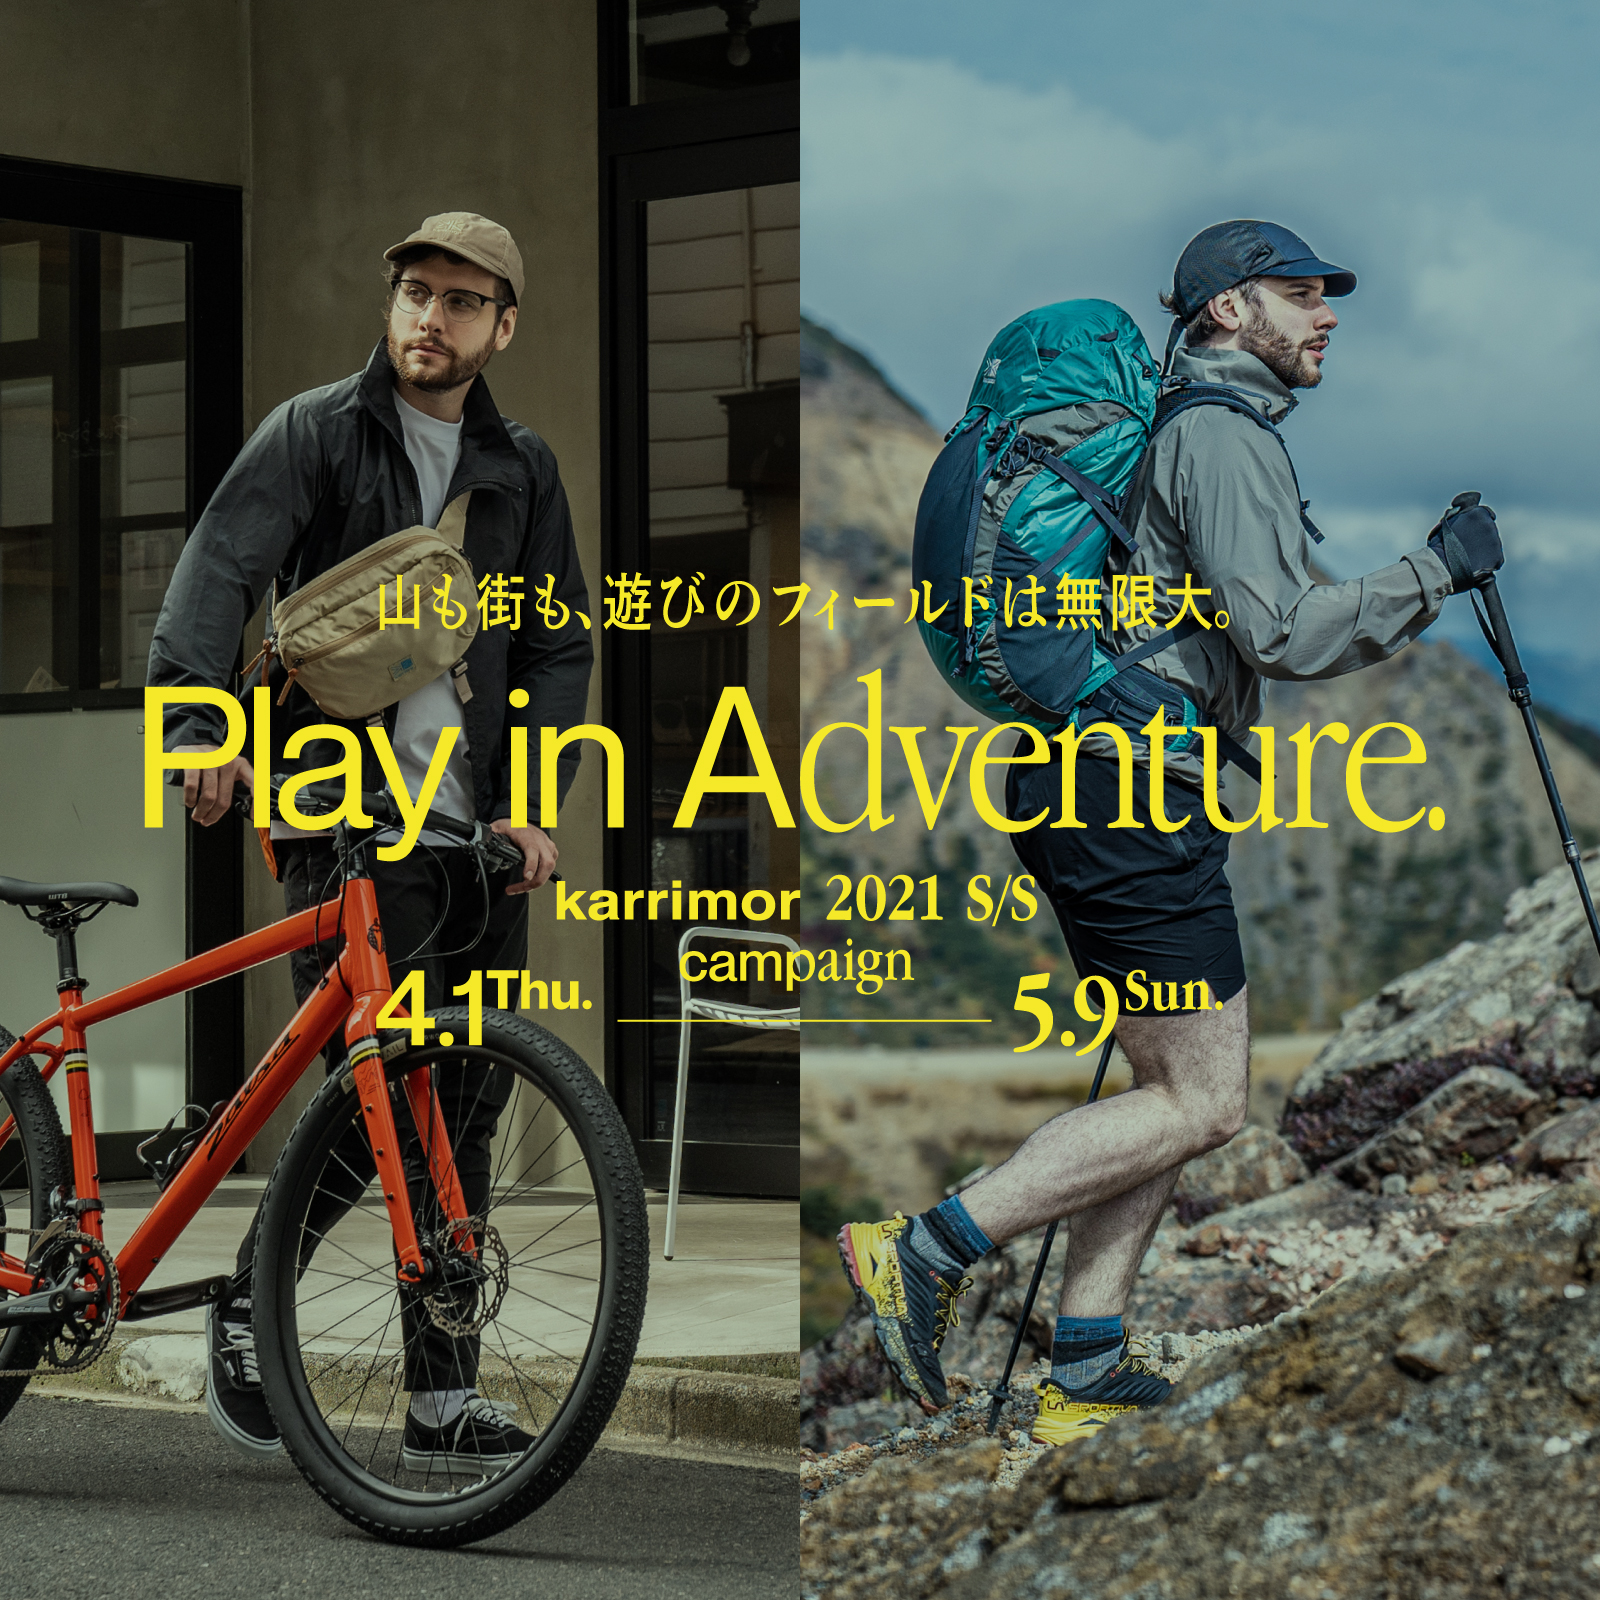 Play in Adventure